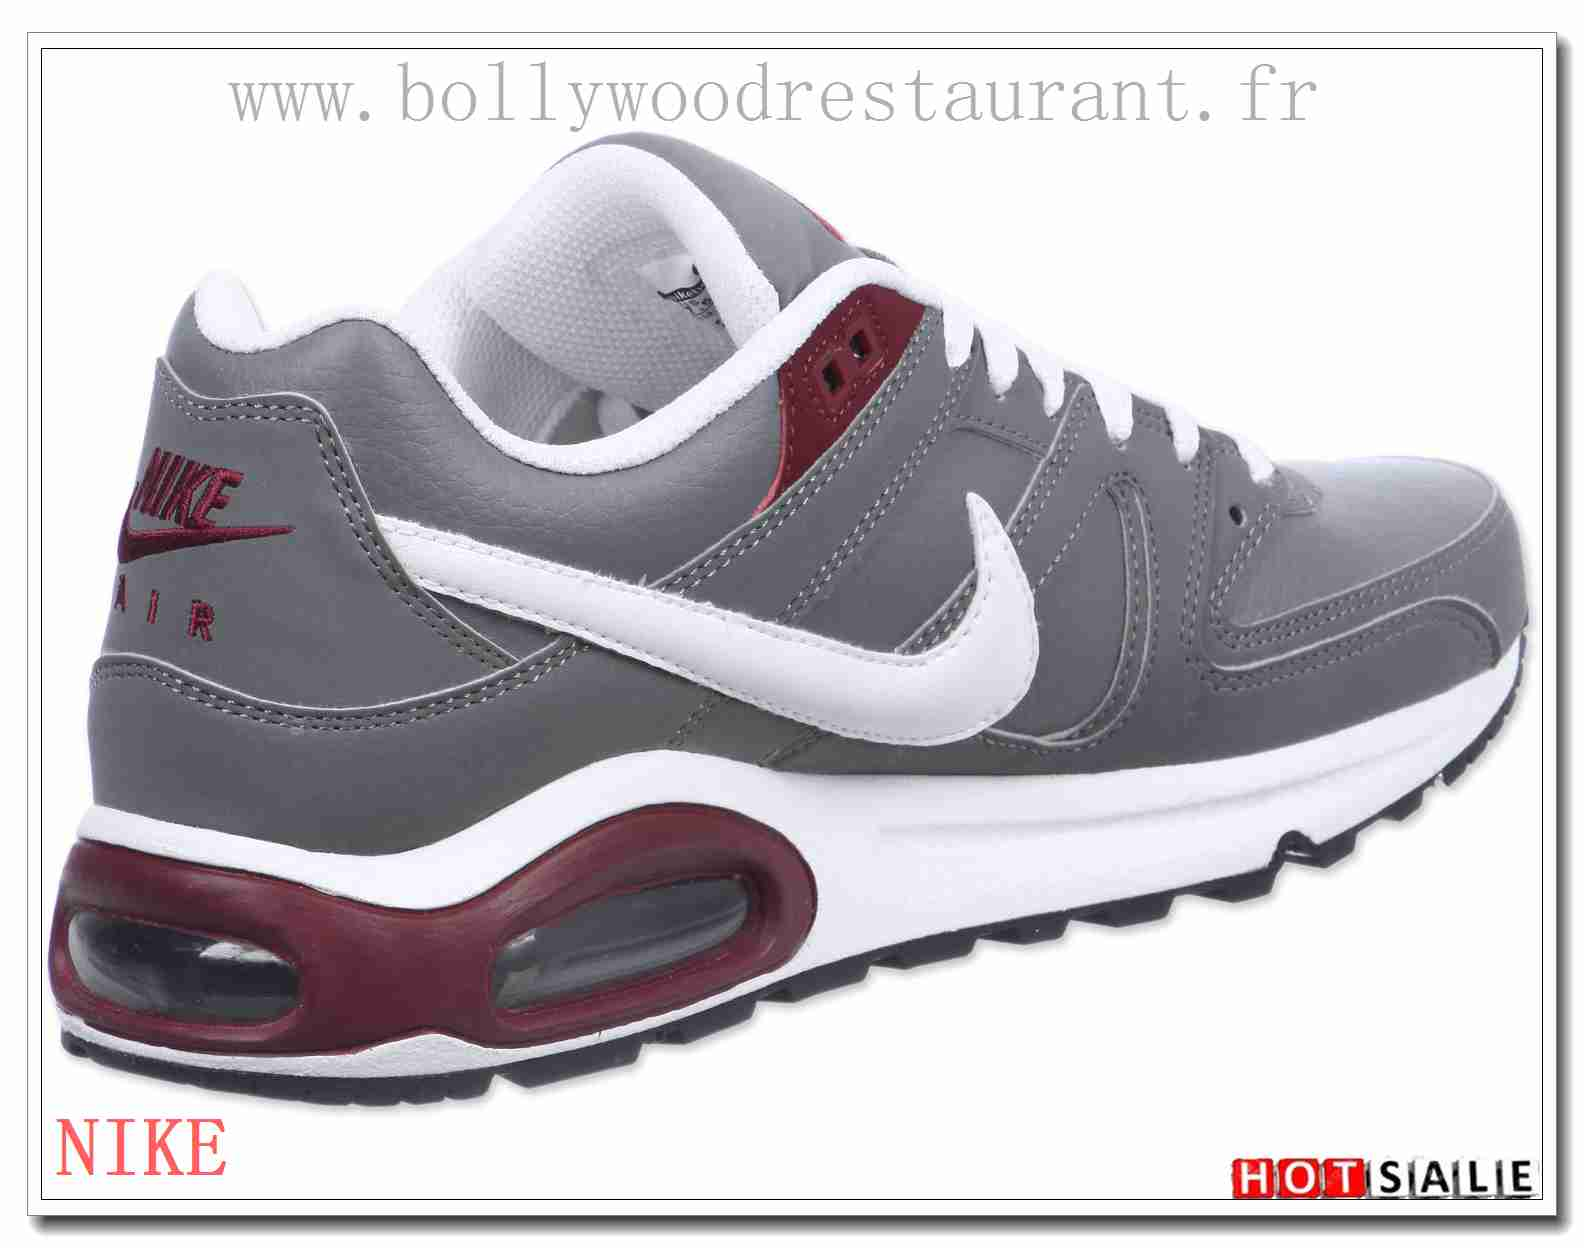 detailed look 6fc3a 55972 Soldes vente air max Pas Cher En Ligne Les Baskets vente air max en vente.  Nouvelle Collection vente air max 2018 Grand Choix!